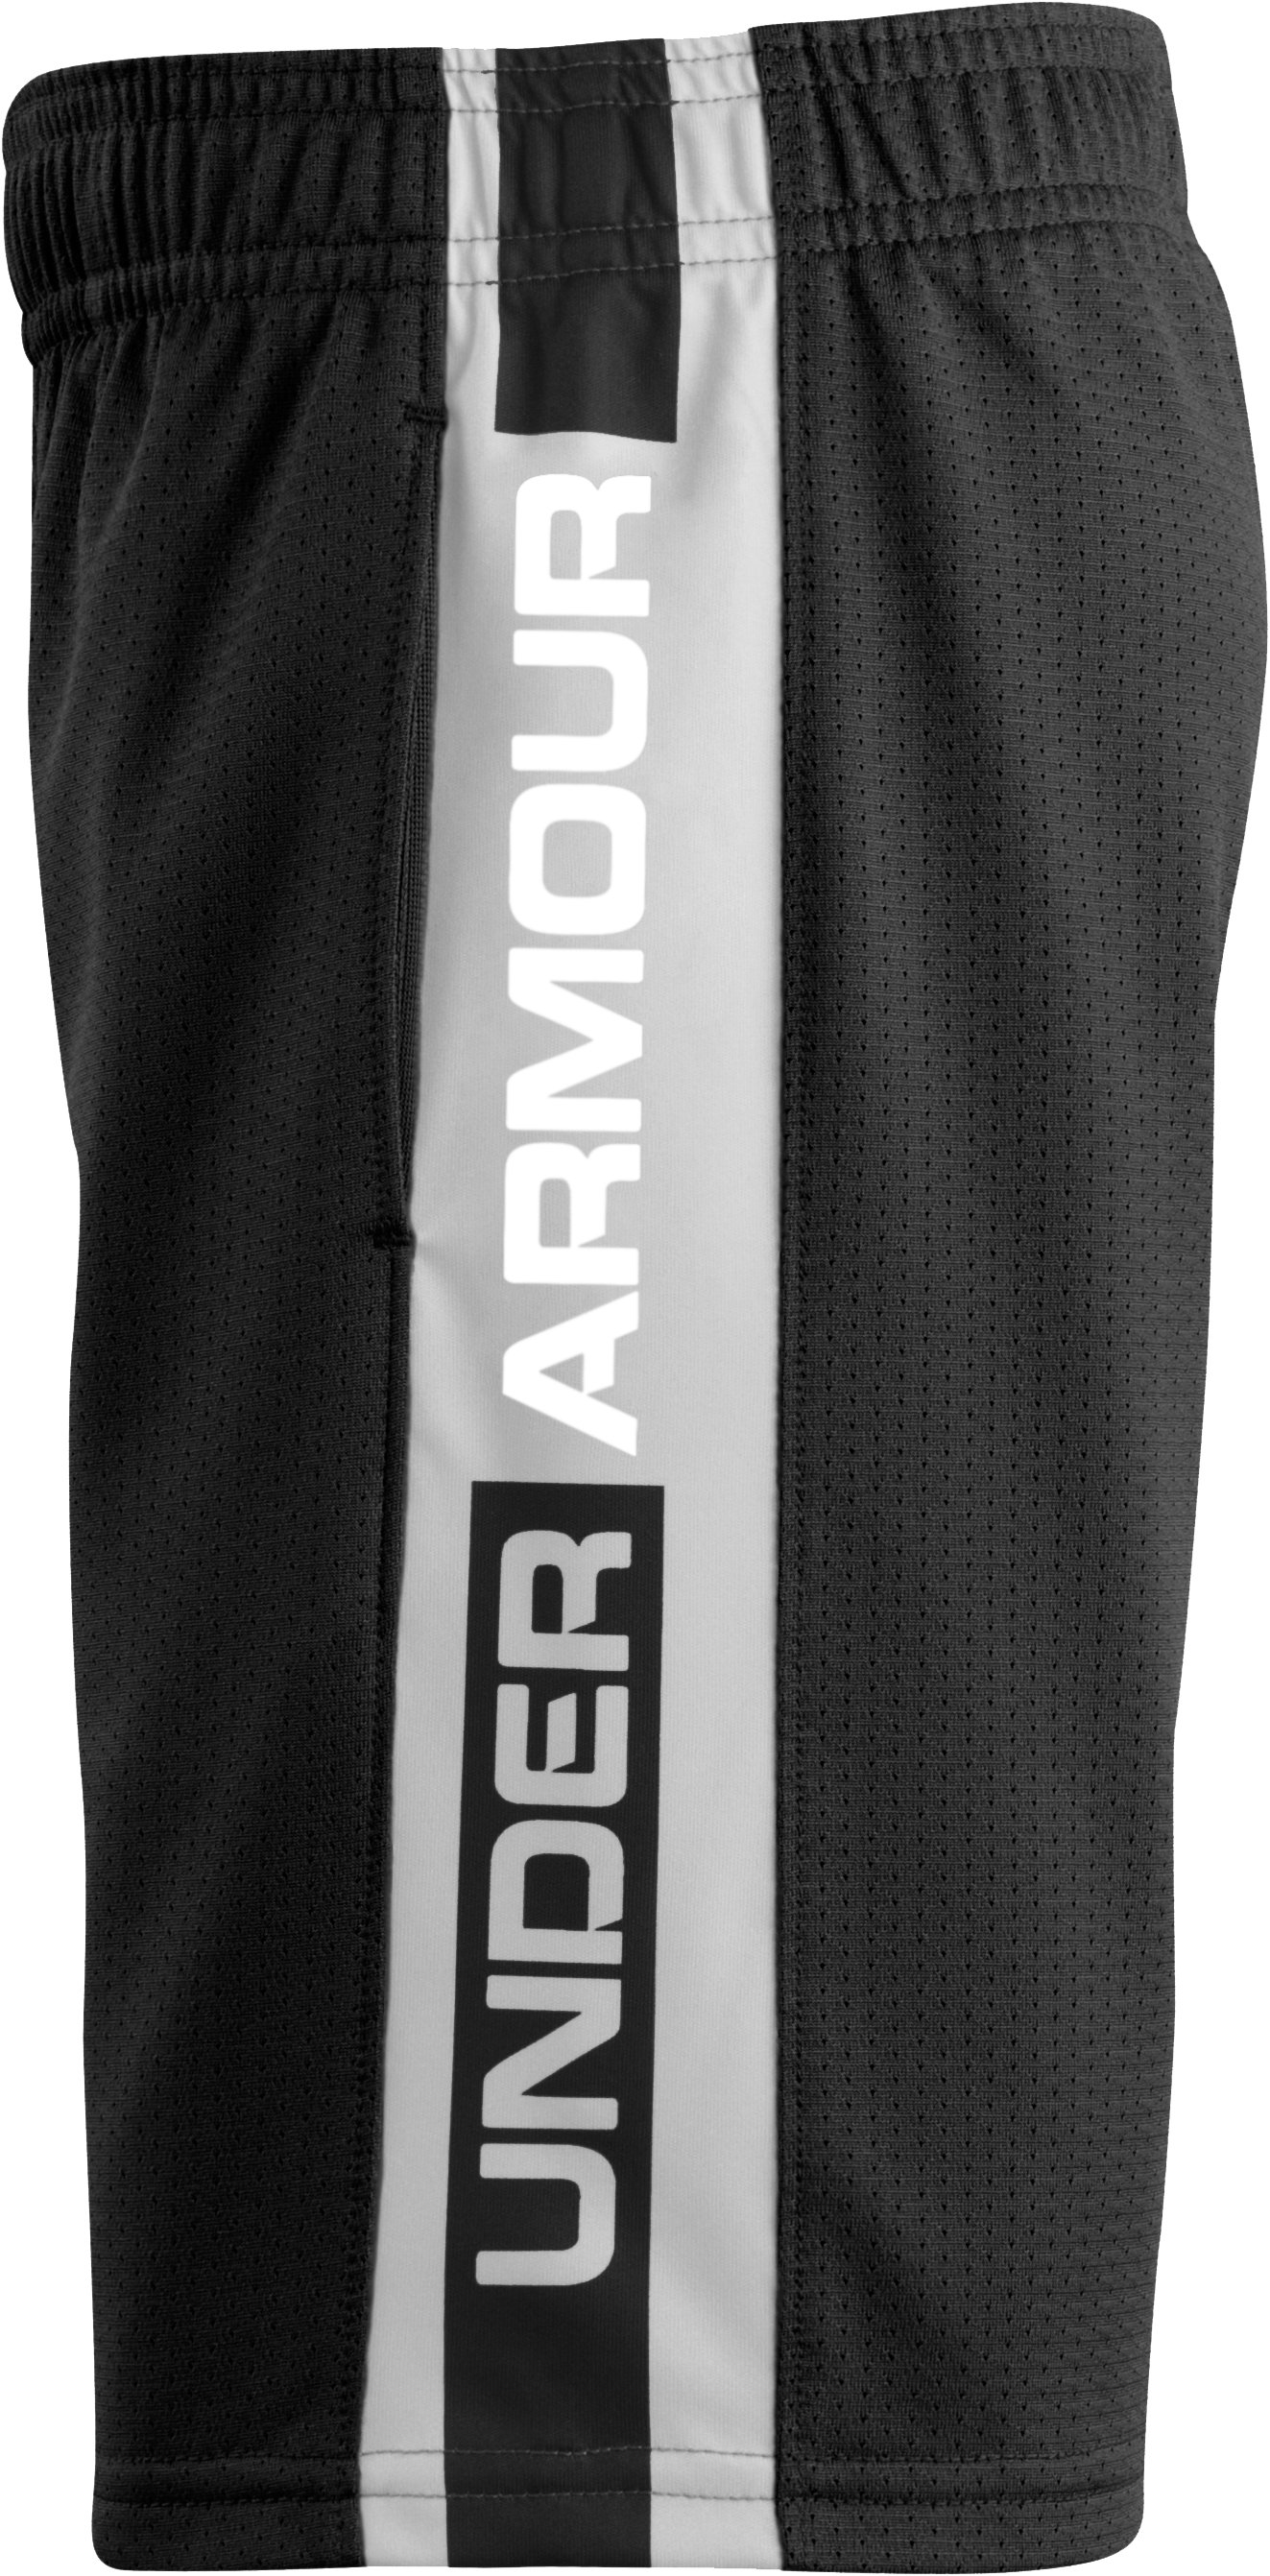 Boys' Toddler UA Mesh Eliminator Shorts, Black , undefined